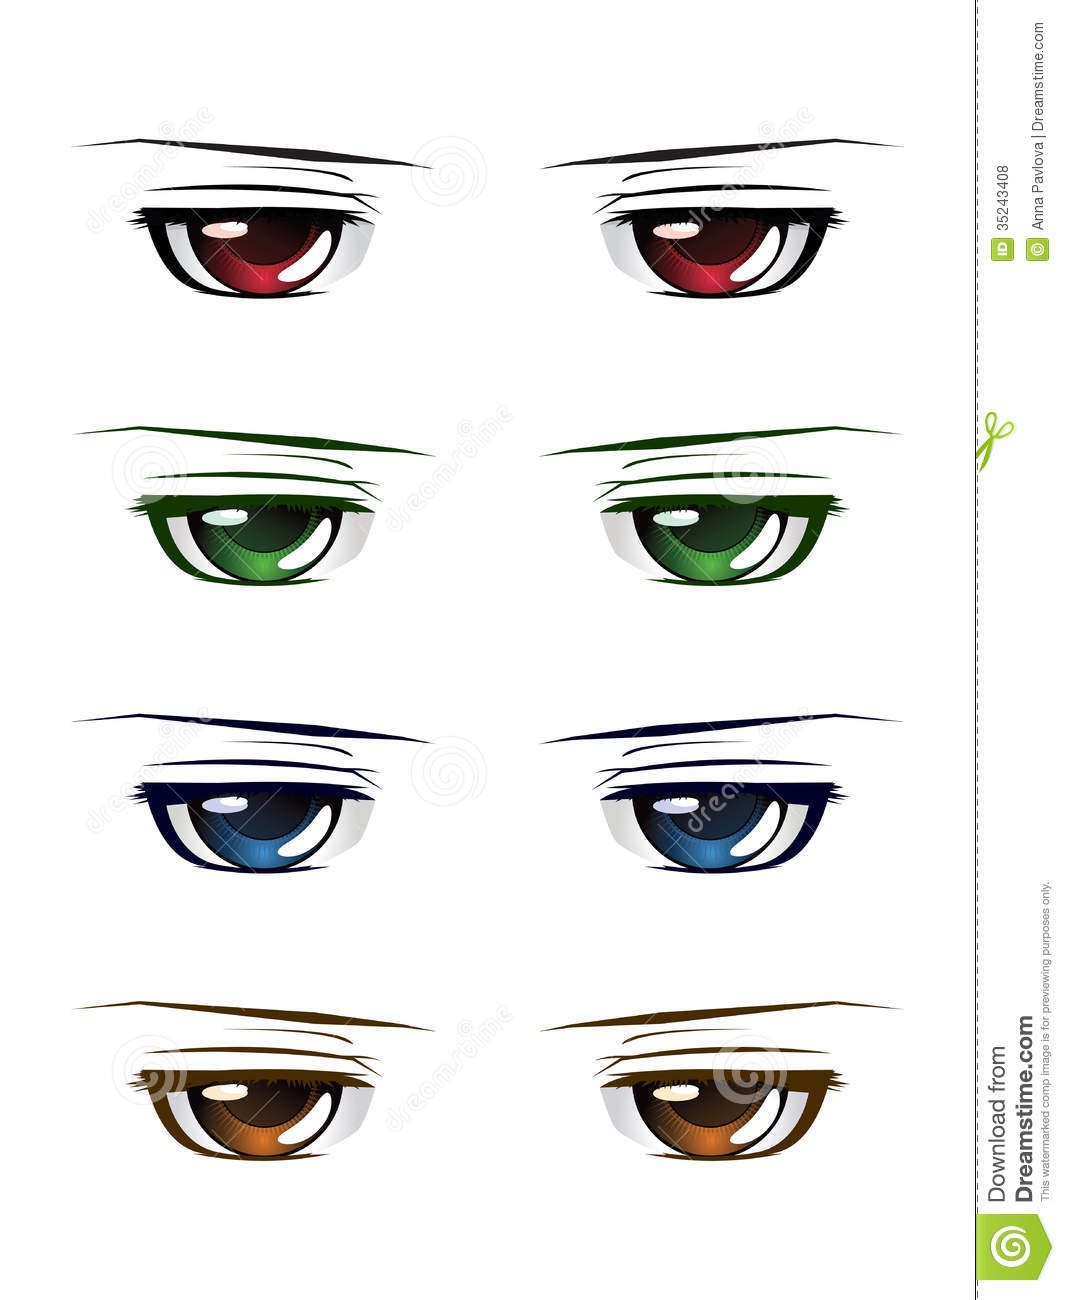 Colorful Male Eyes Royalty Free Stock Photos - Image: 35243408